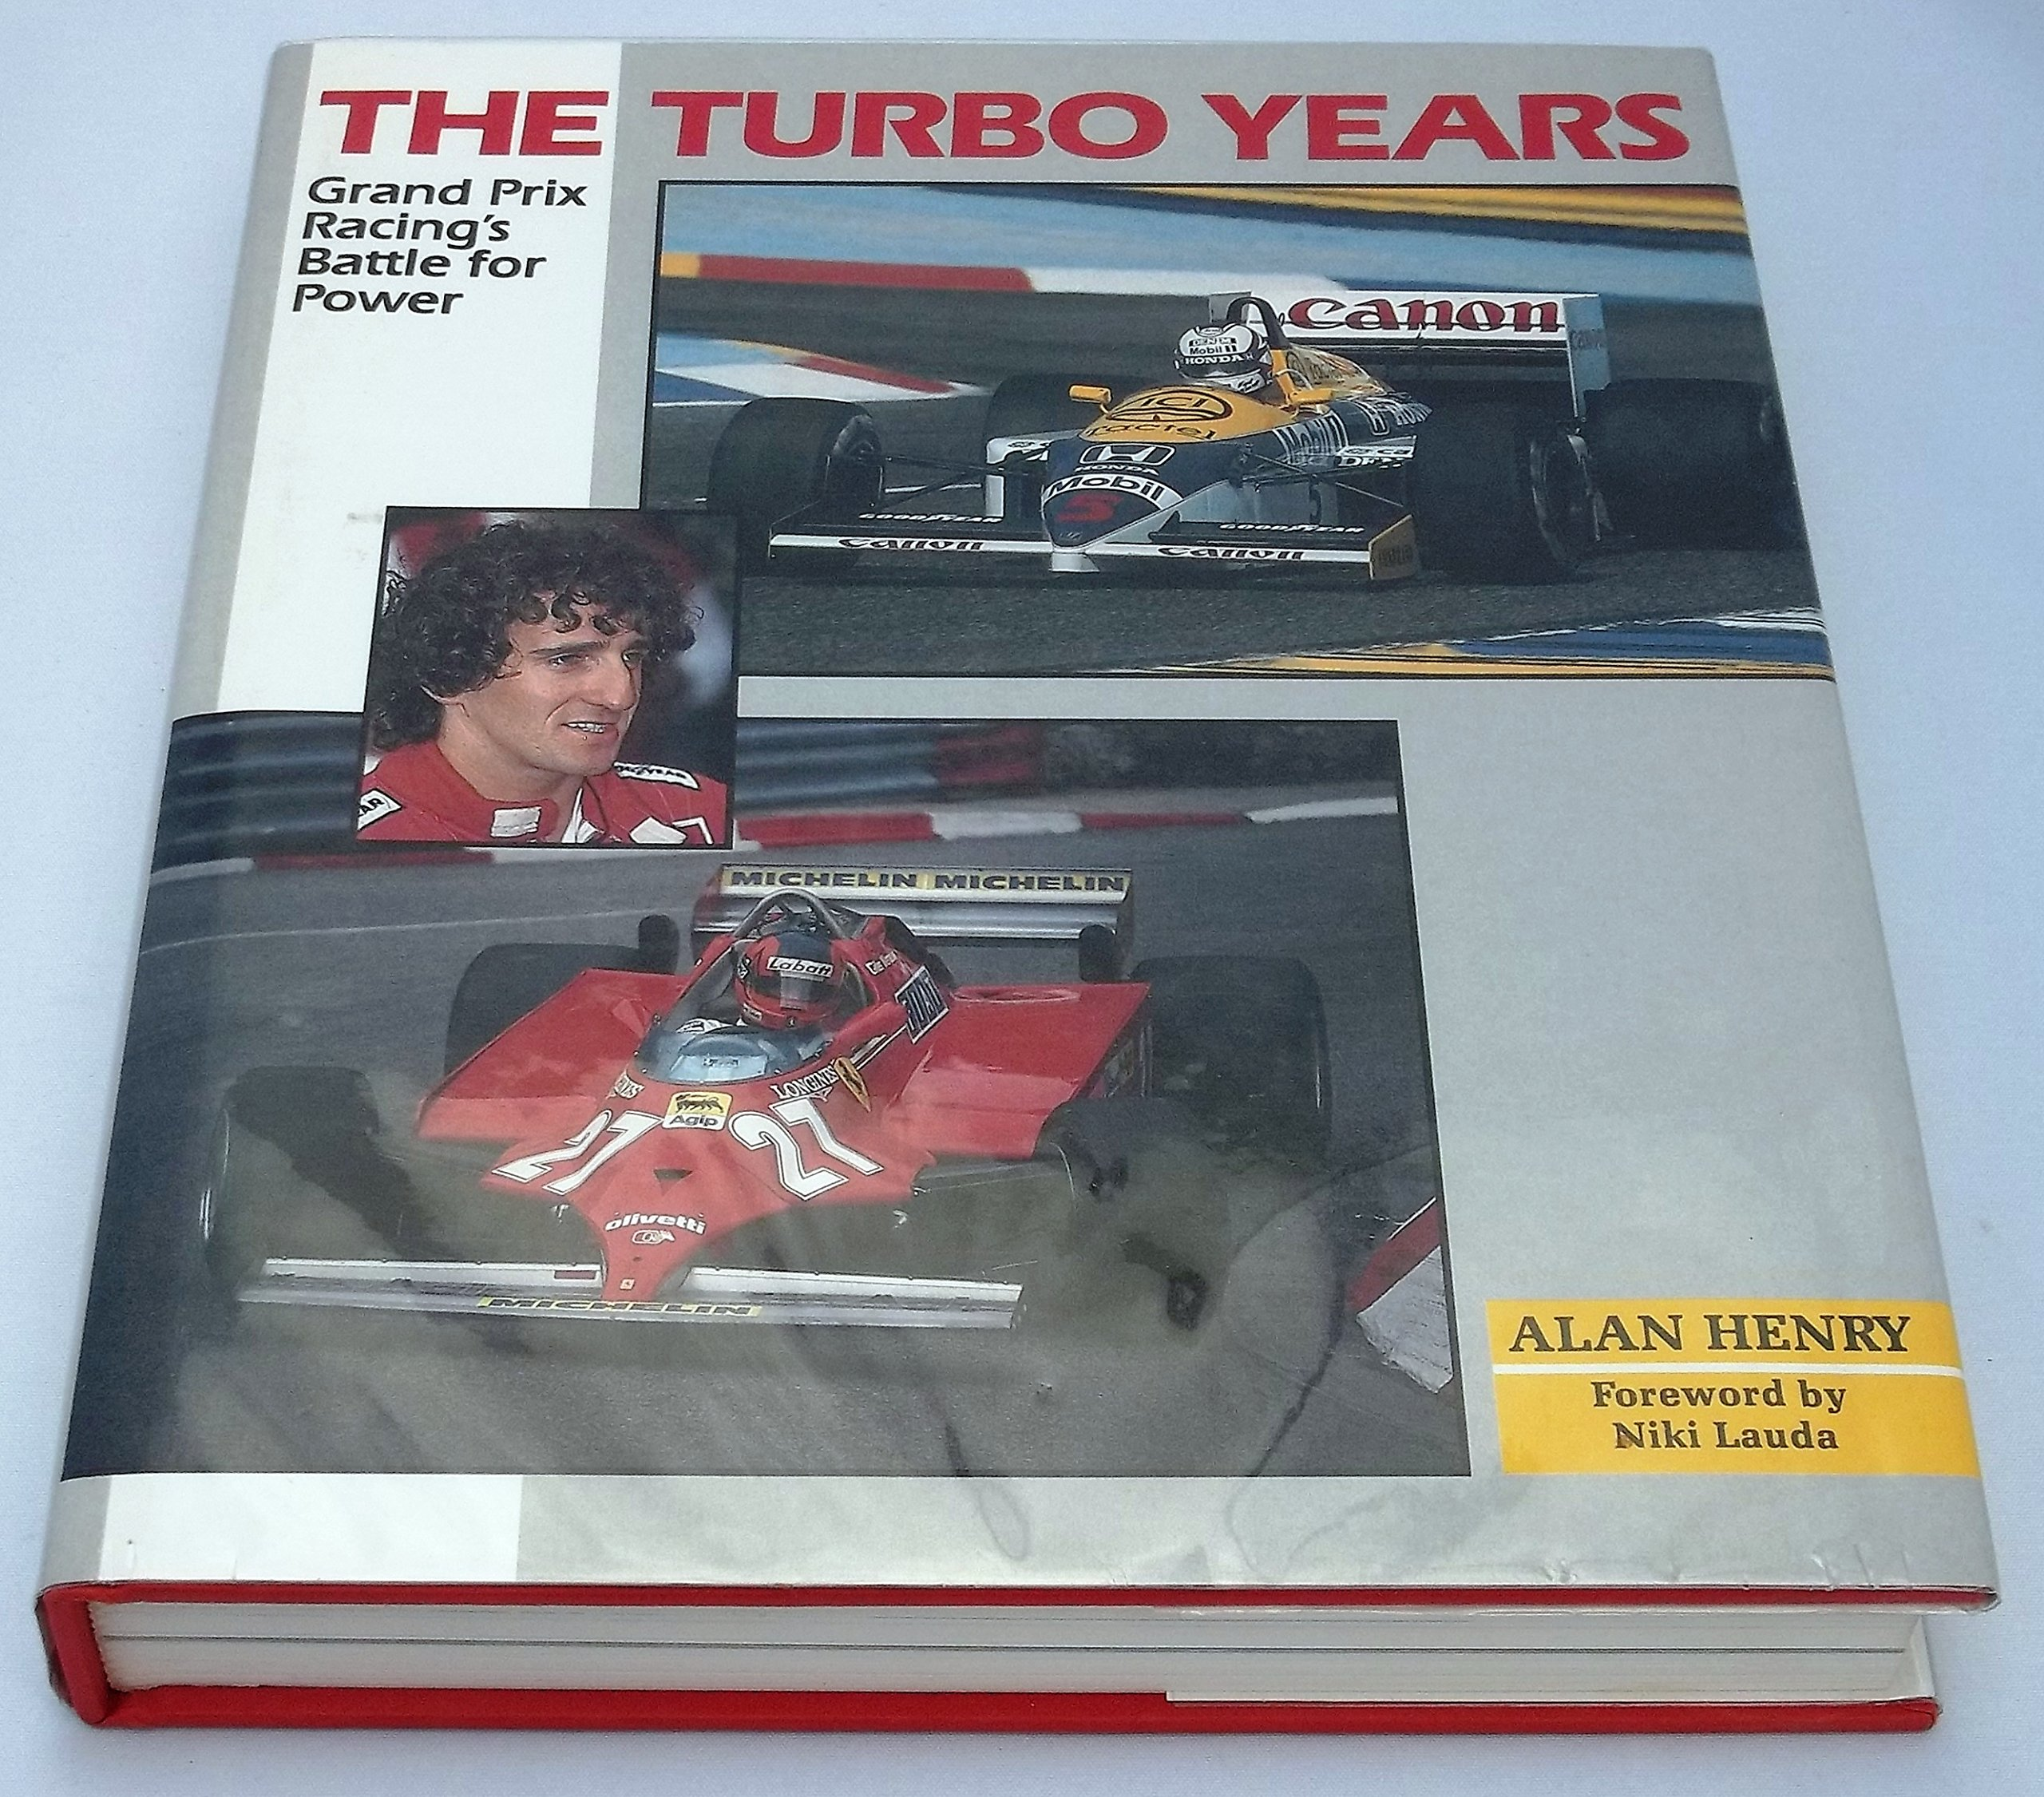 Turbo Years: Grand Prix Racings Battle for Power: Amazon.es: Alan Henry: Libros en idiomas extranjeros